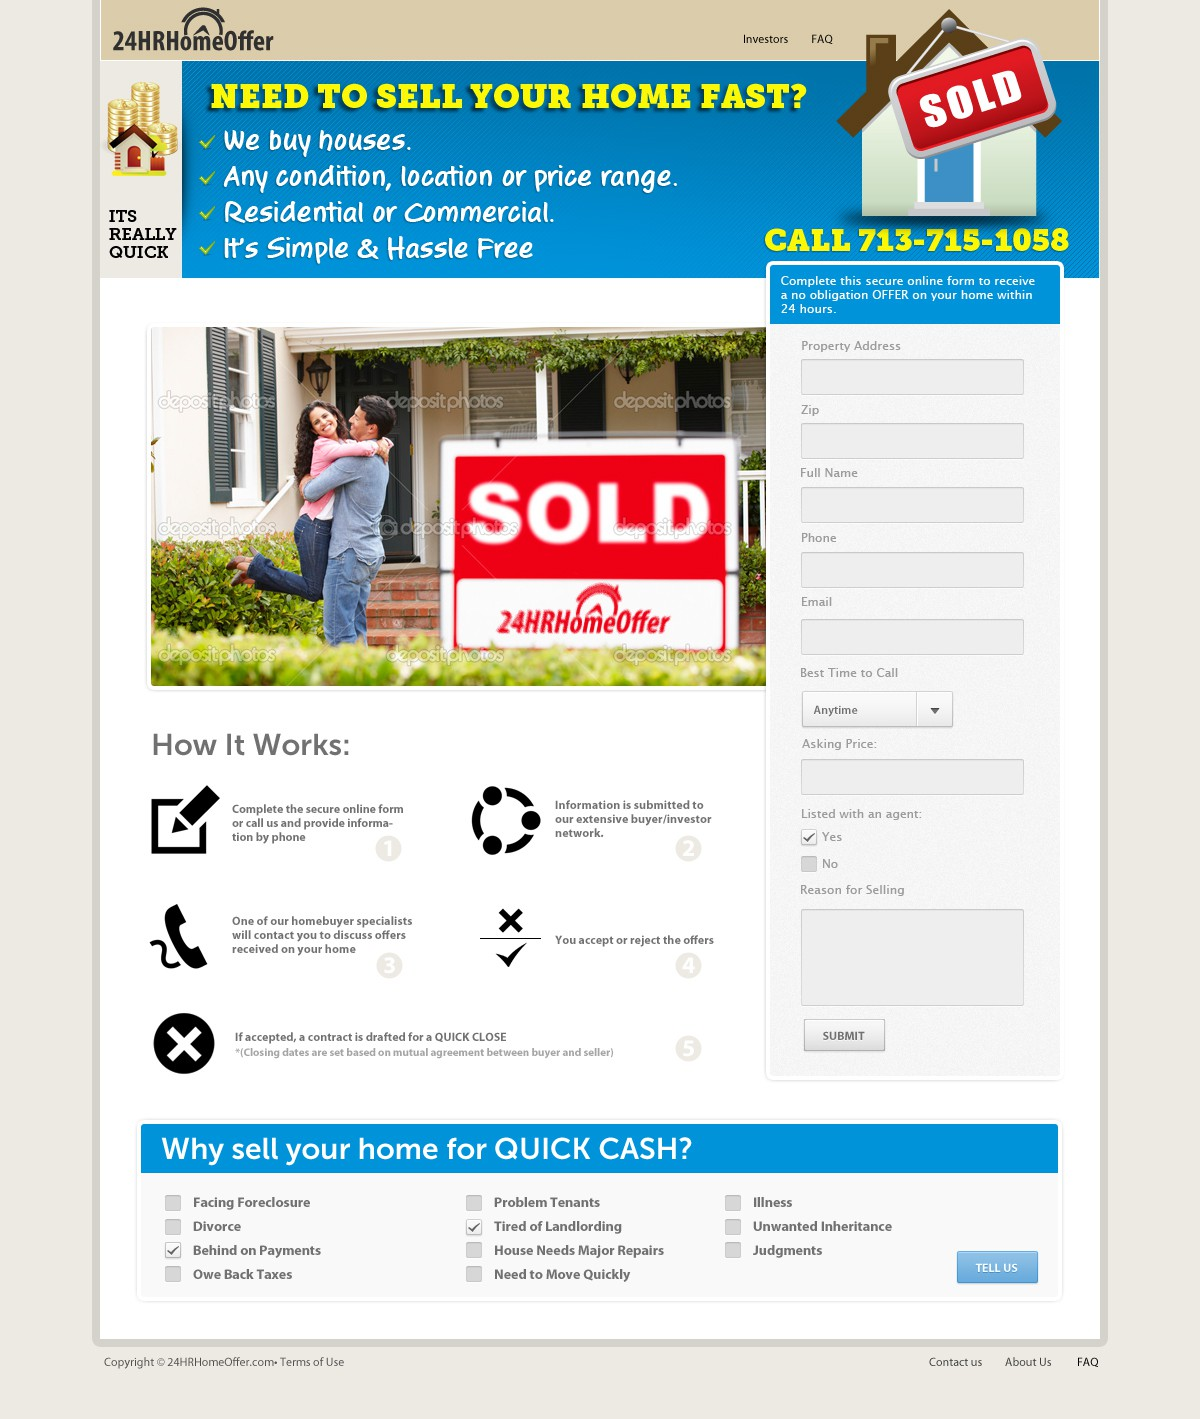 Need Landing Page/website designed for Real Estate Investment Site